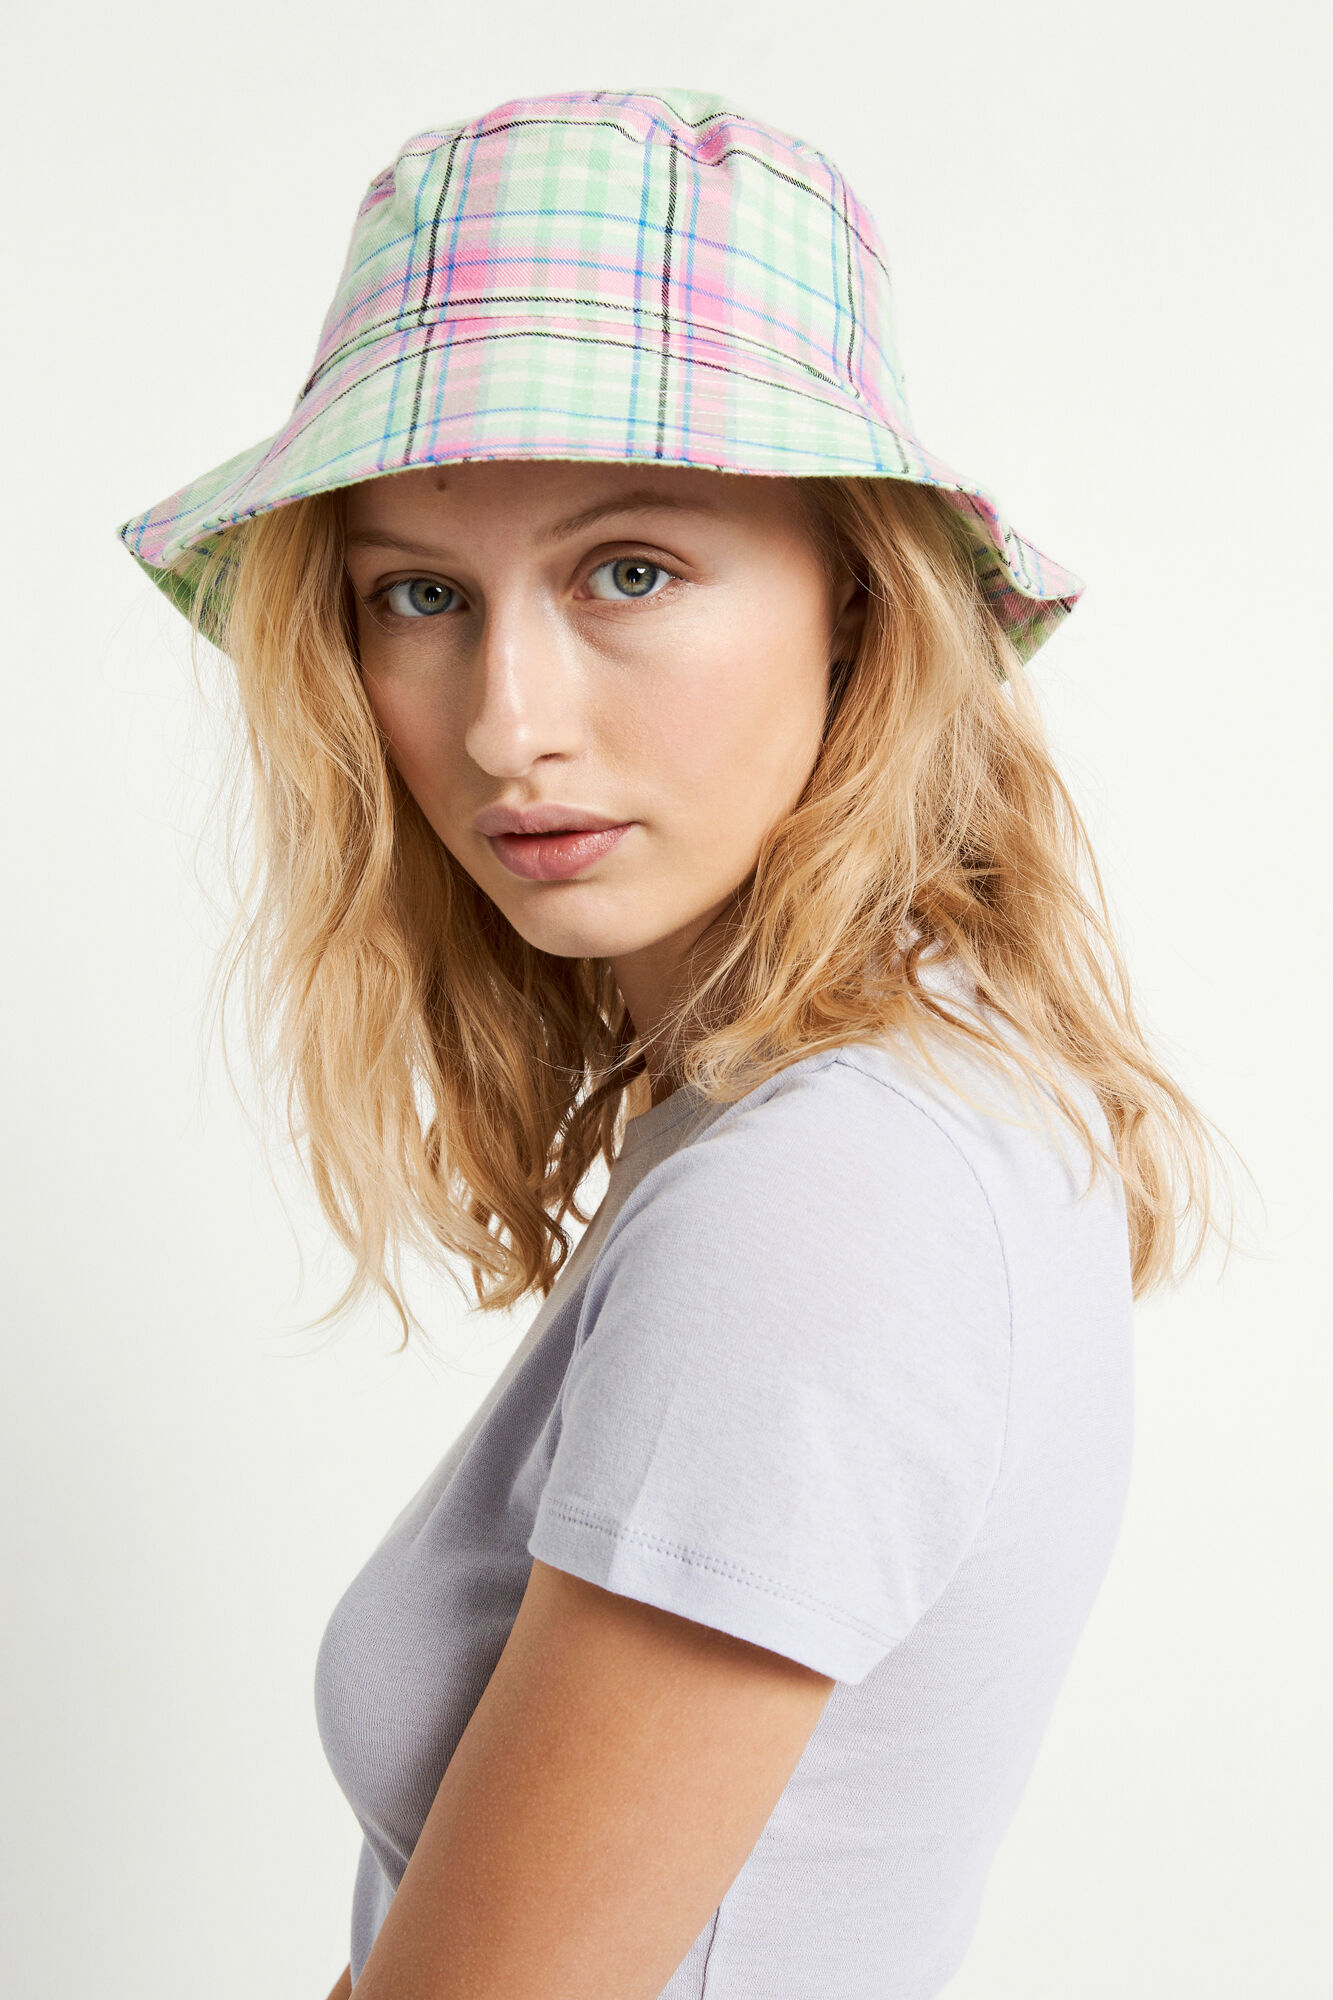 ENRETNA BUCKET HAT 6719, RETNA CHECK